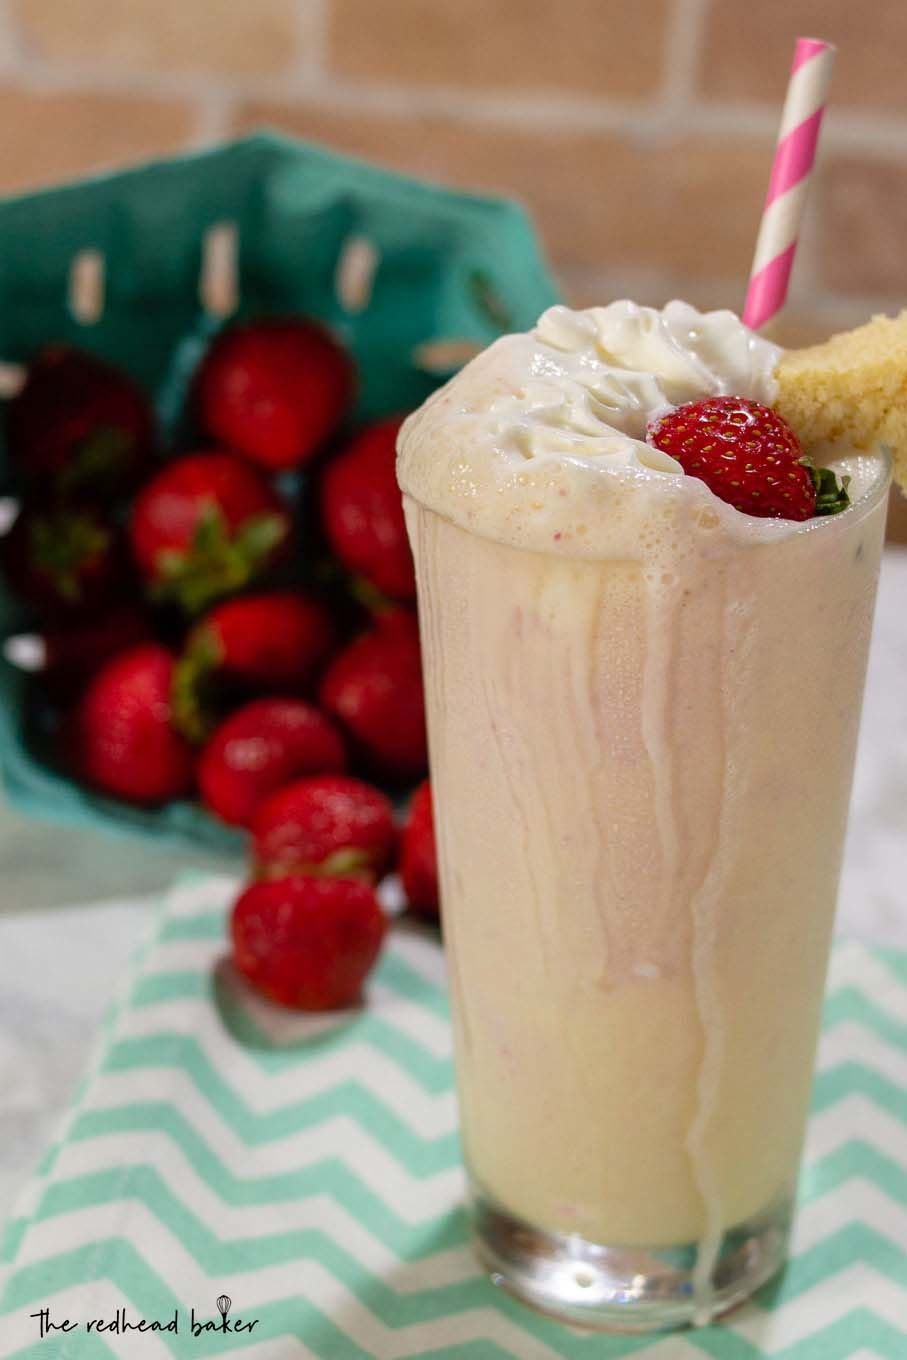 A strawberry shortcake milkshake in front of a tipped carton of fresh strawberries